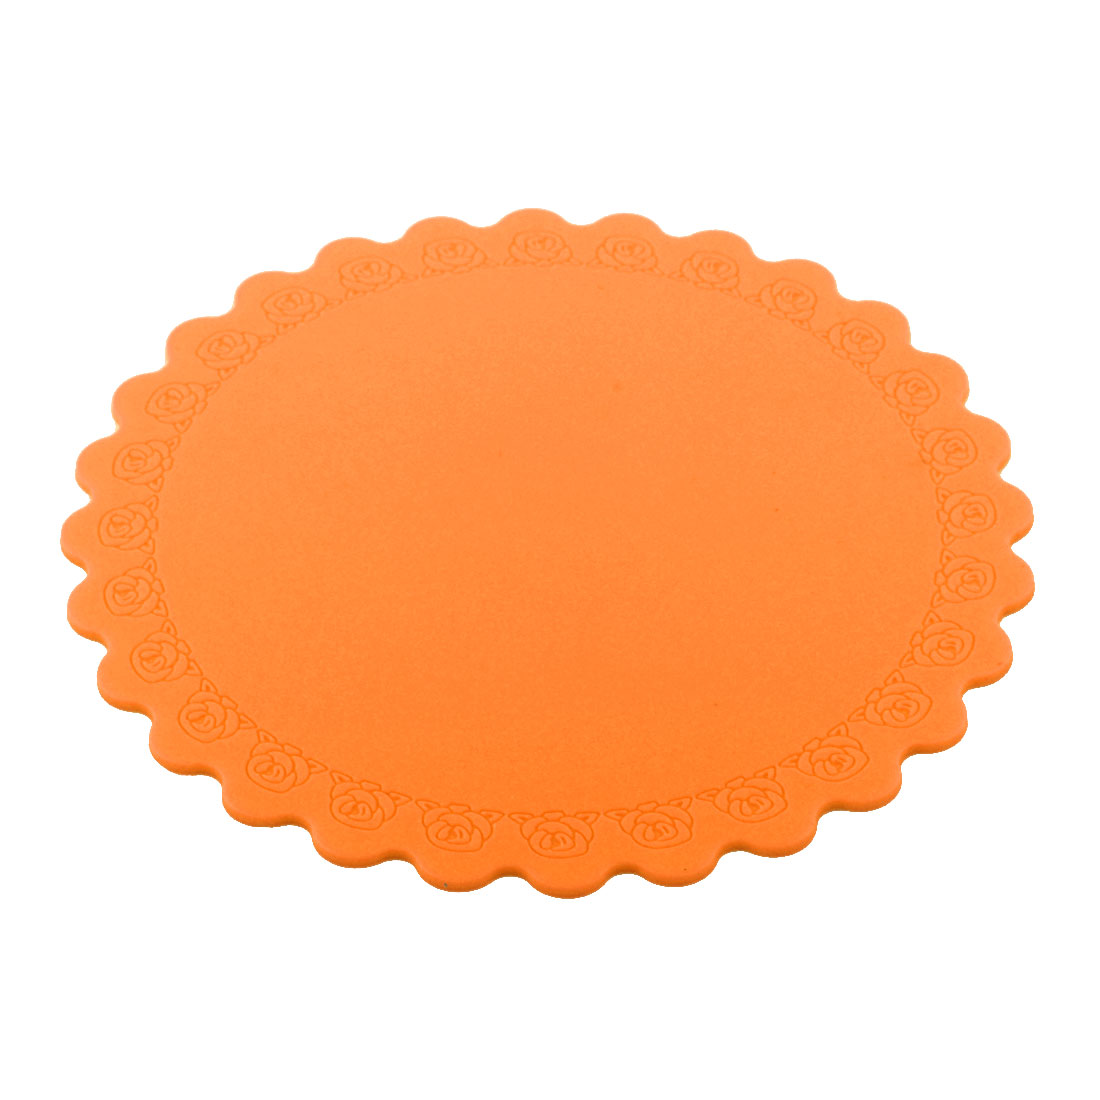 Silicone Rose Carven Table Heat Resistant Mat Cup Coaster Cushion Placemat Pad Orange